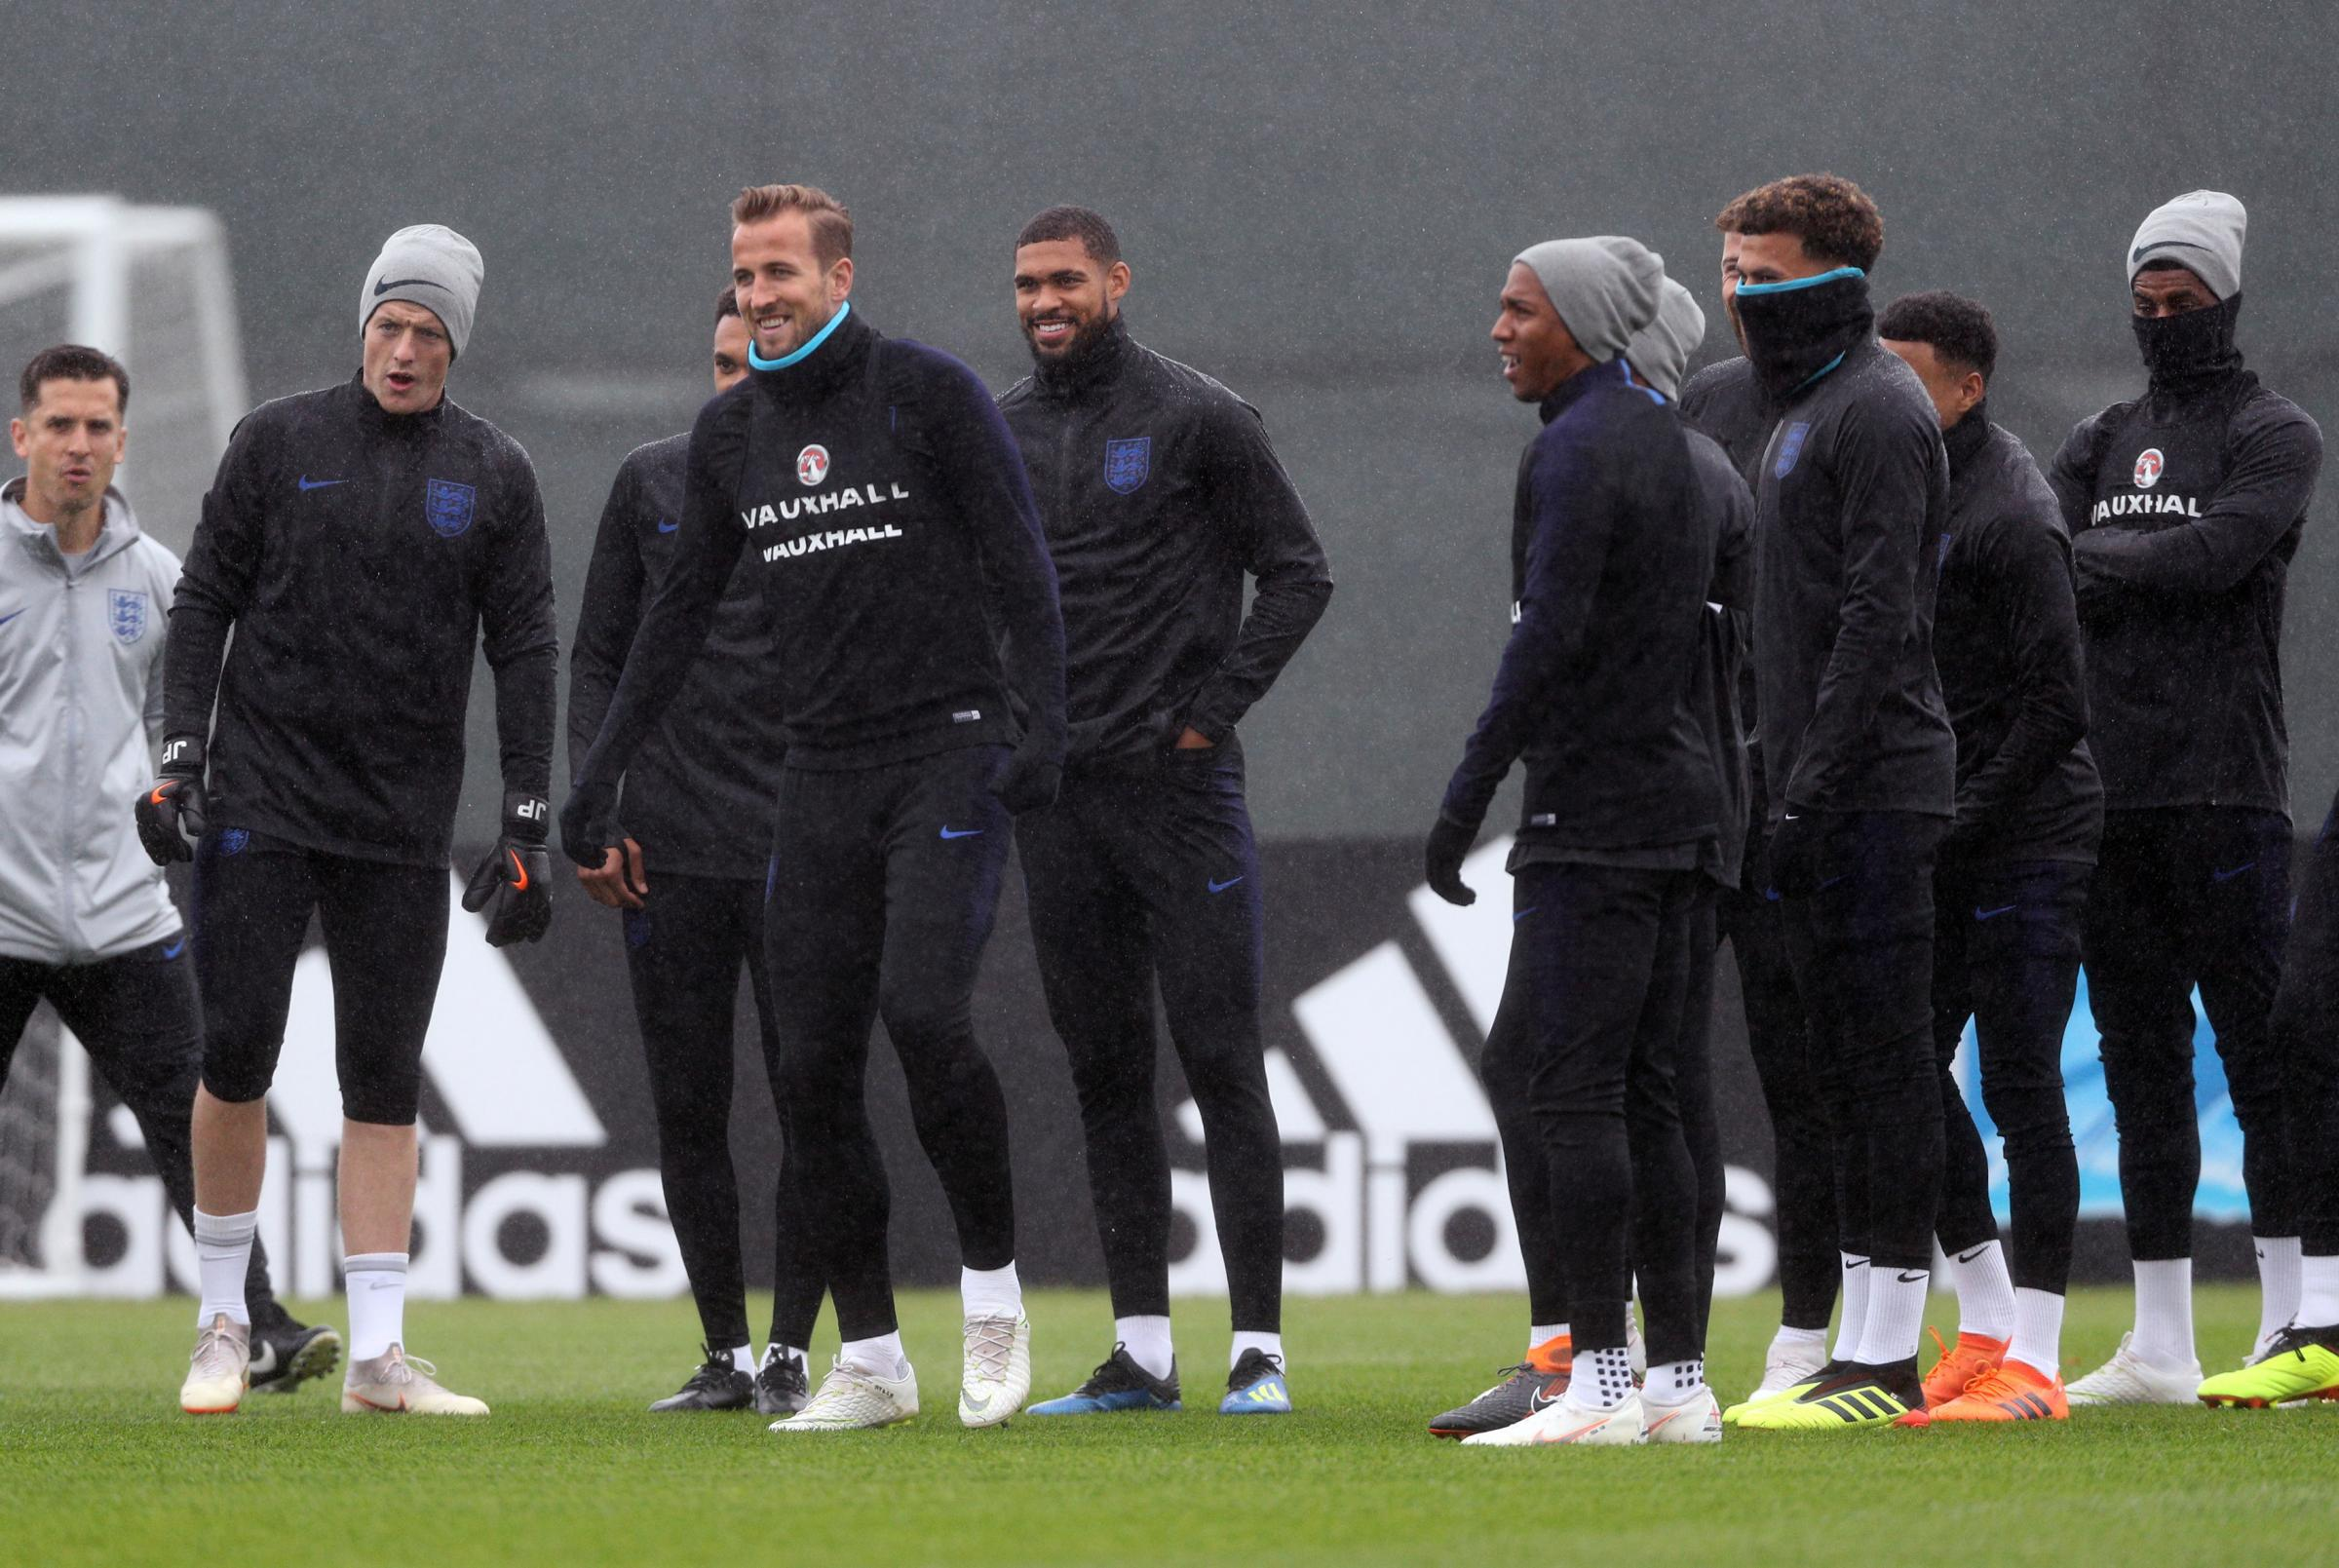 England's Harry Kane and his team-mates during a training session at the Spartak Zelenogorsk Stadium